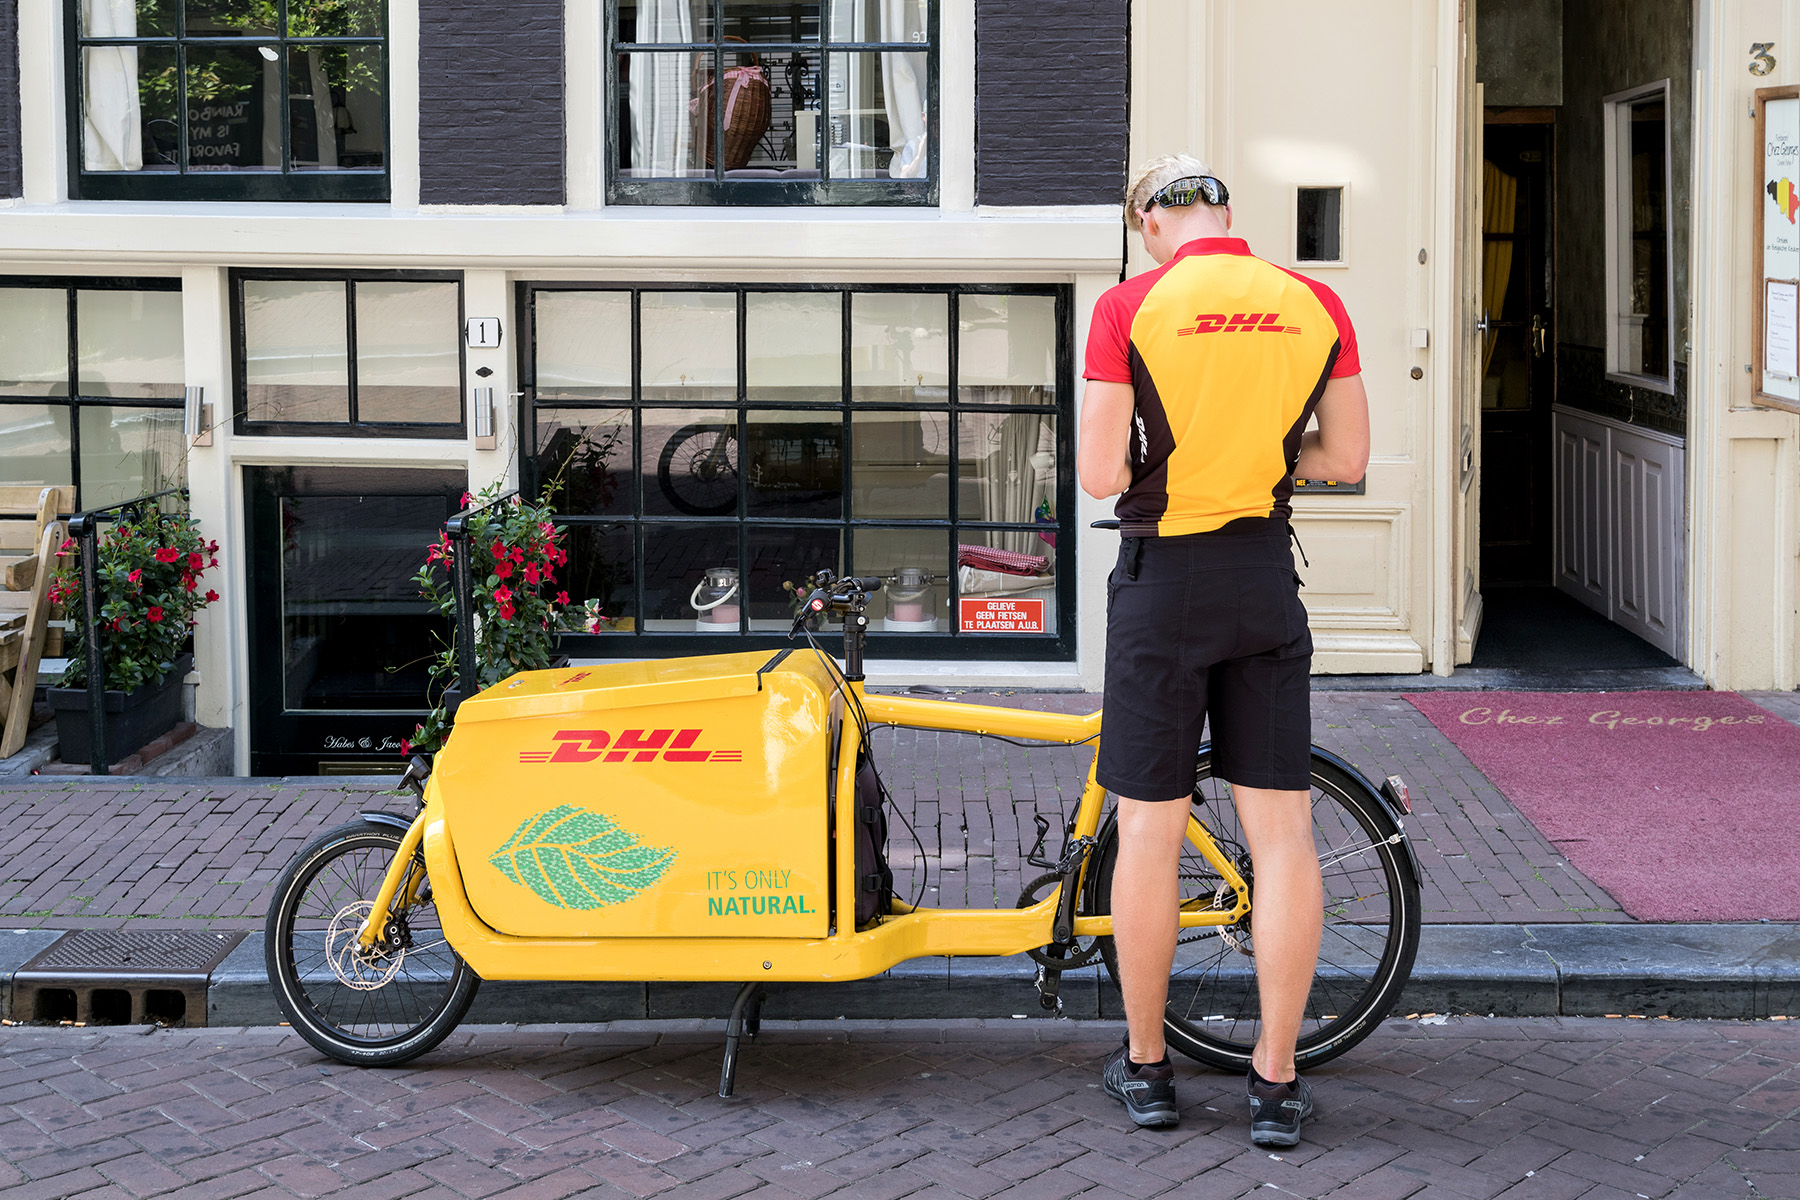 DHL delivery bike in Amsterdam